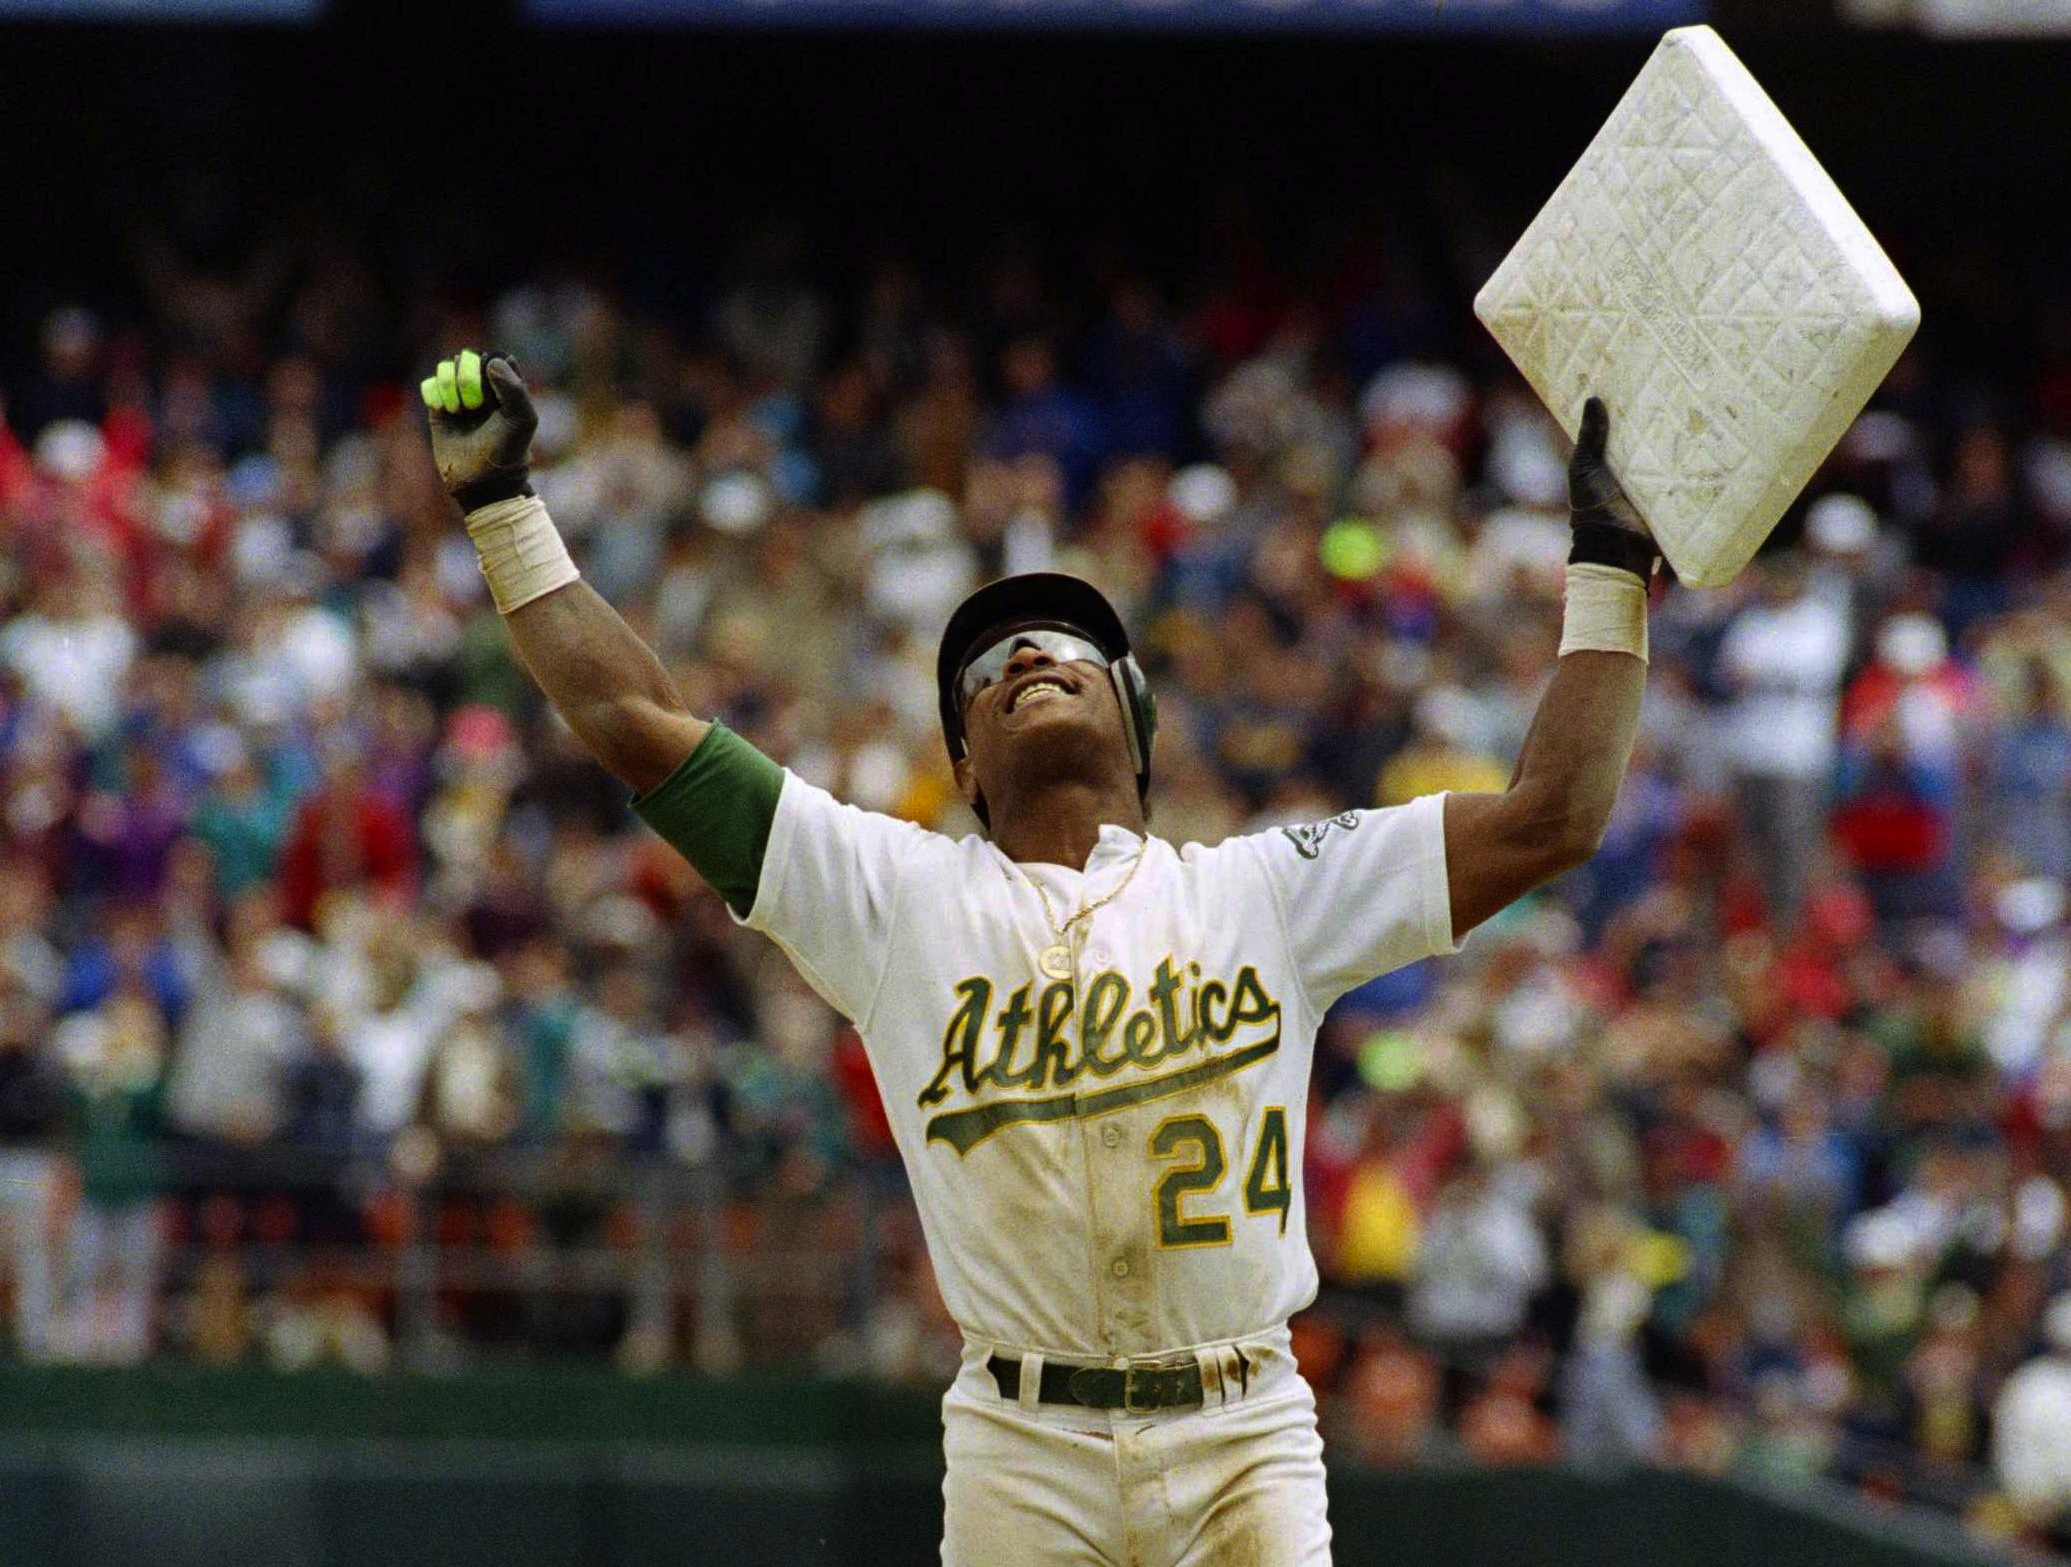 8-rickey-henderson-stolen-base-oakland-hometown-sports-heroes.jpg